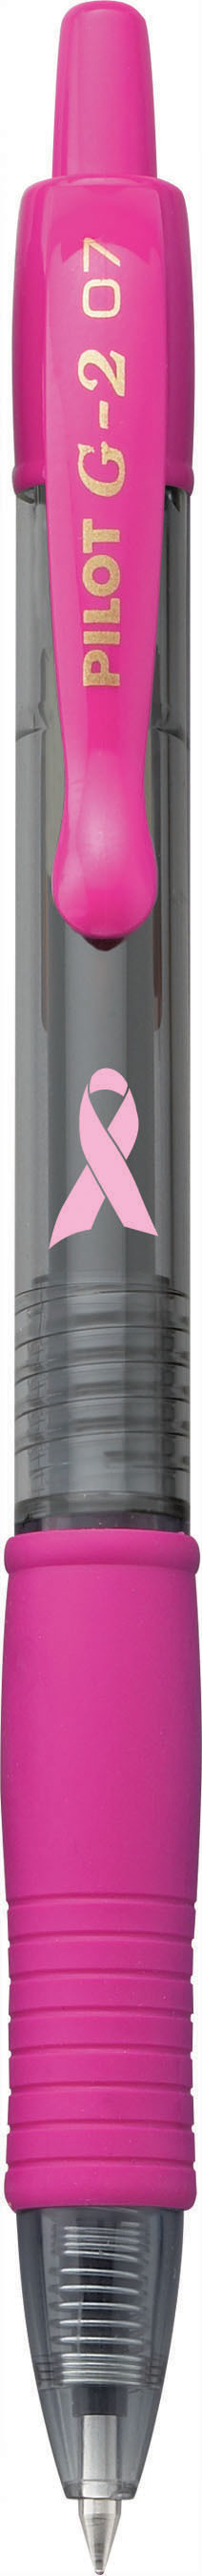 PILOT CORPORATION OF AMERICA PEN BREAST CANCER AWARENESS